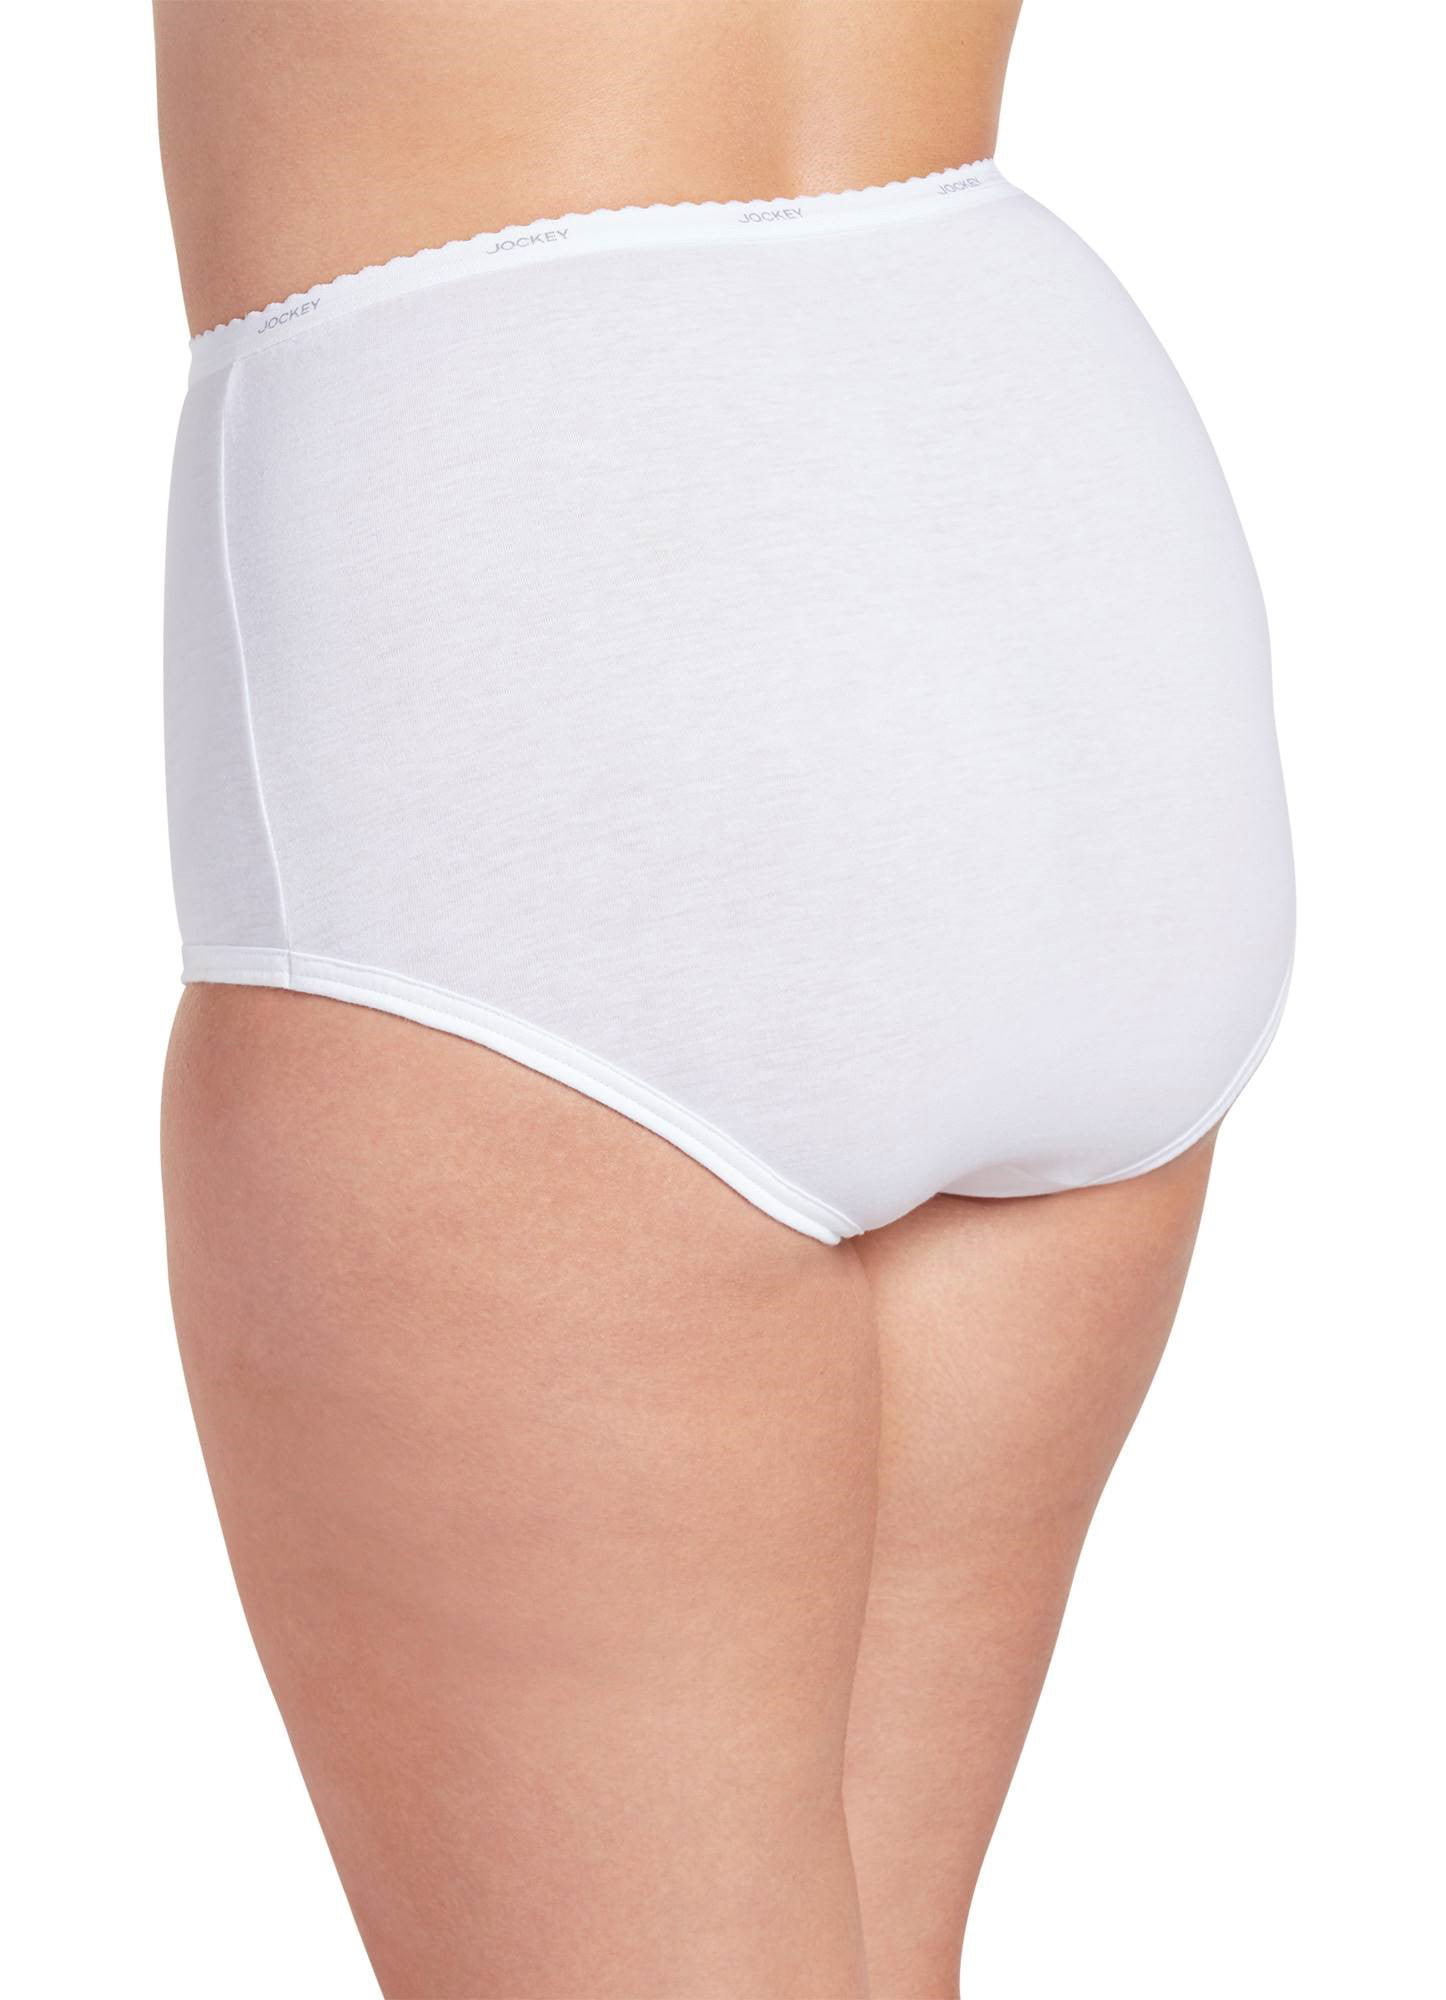 382be241803 Jockey - Jockey Women s Underwear Classic Brief - 3 Pack - Walmart.com